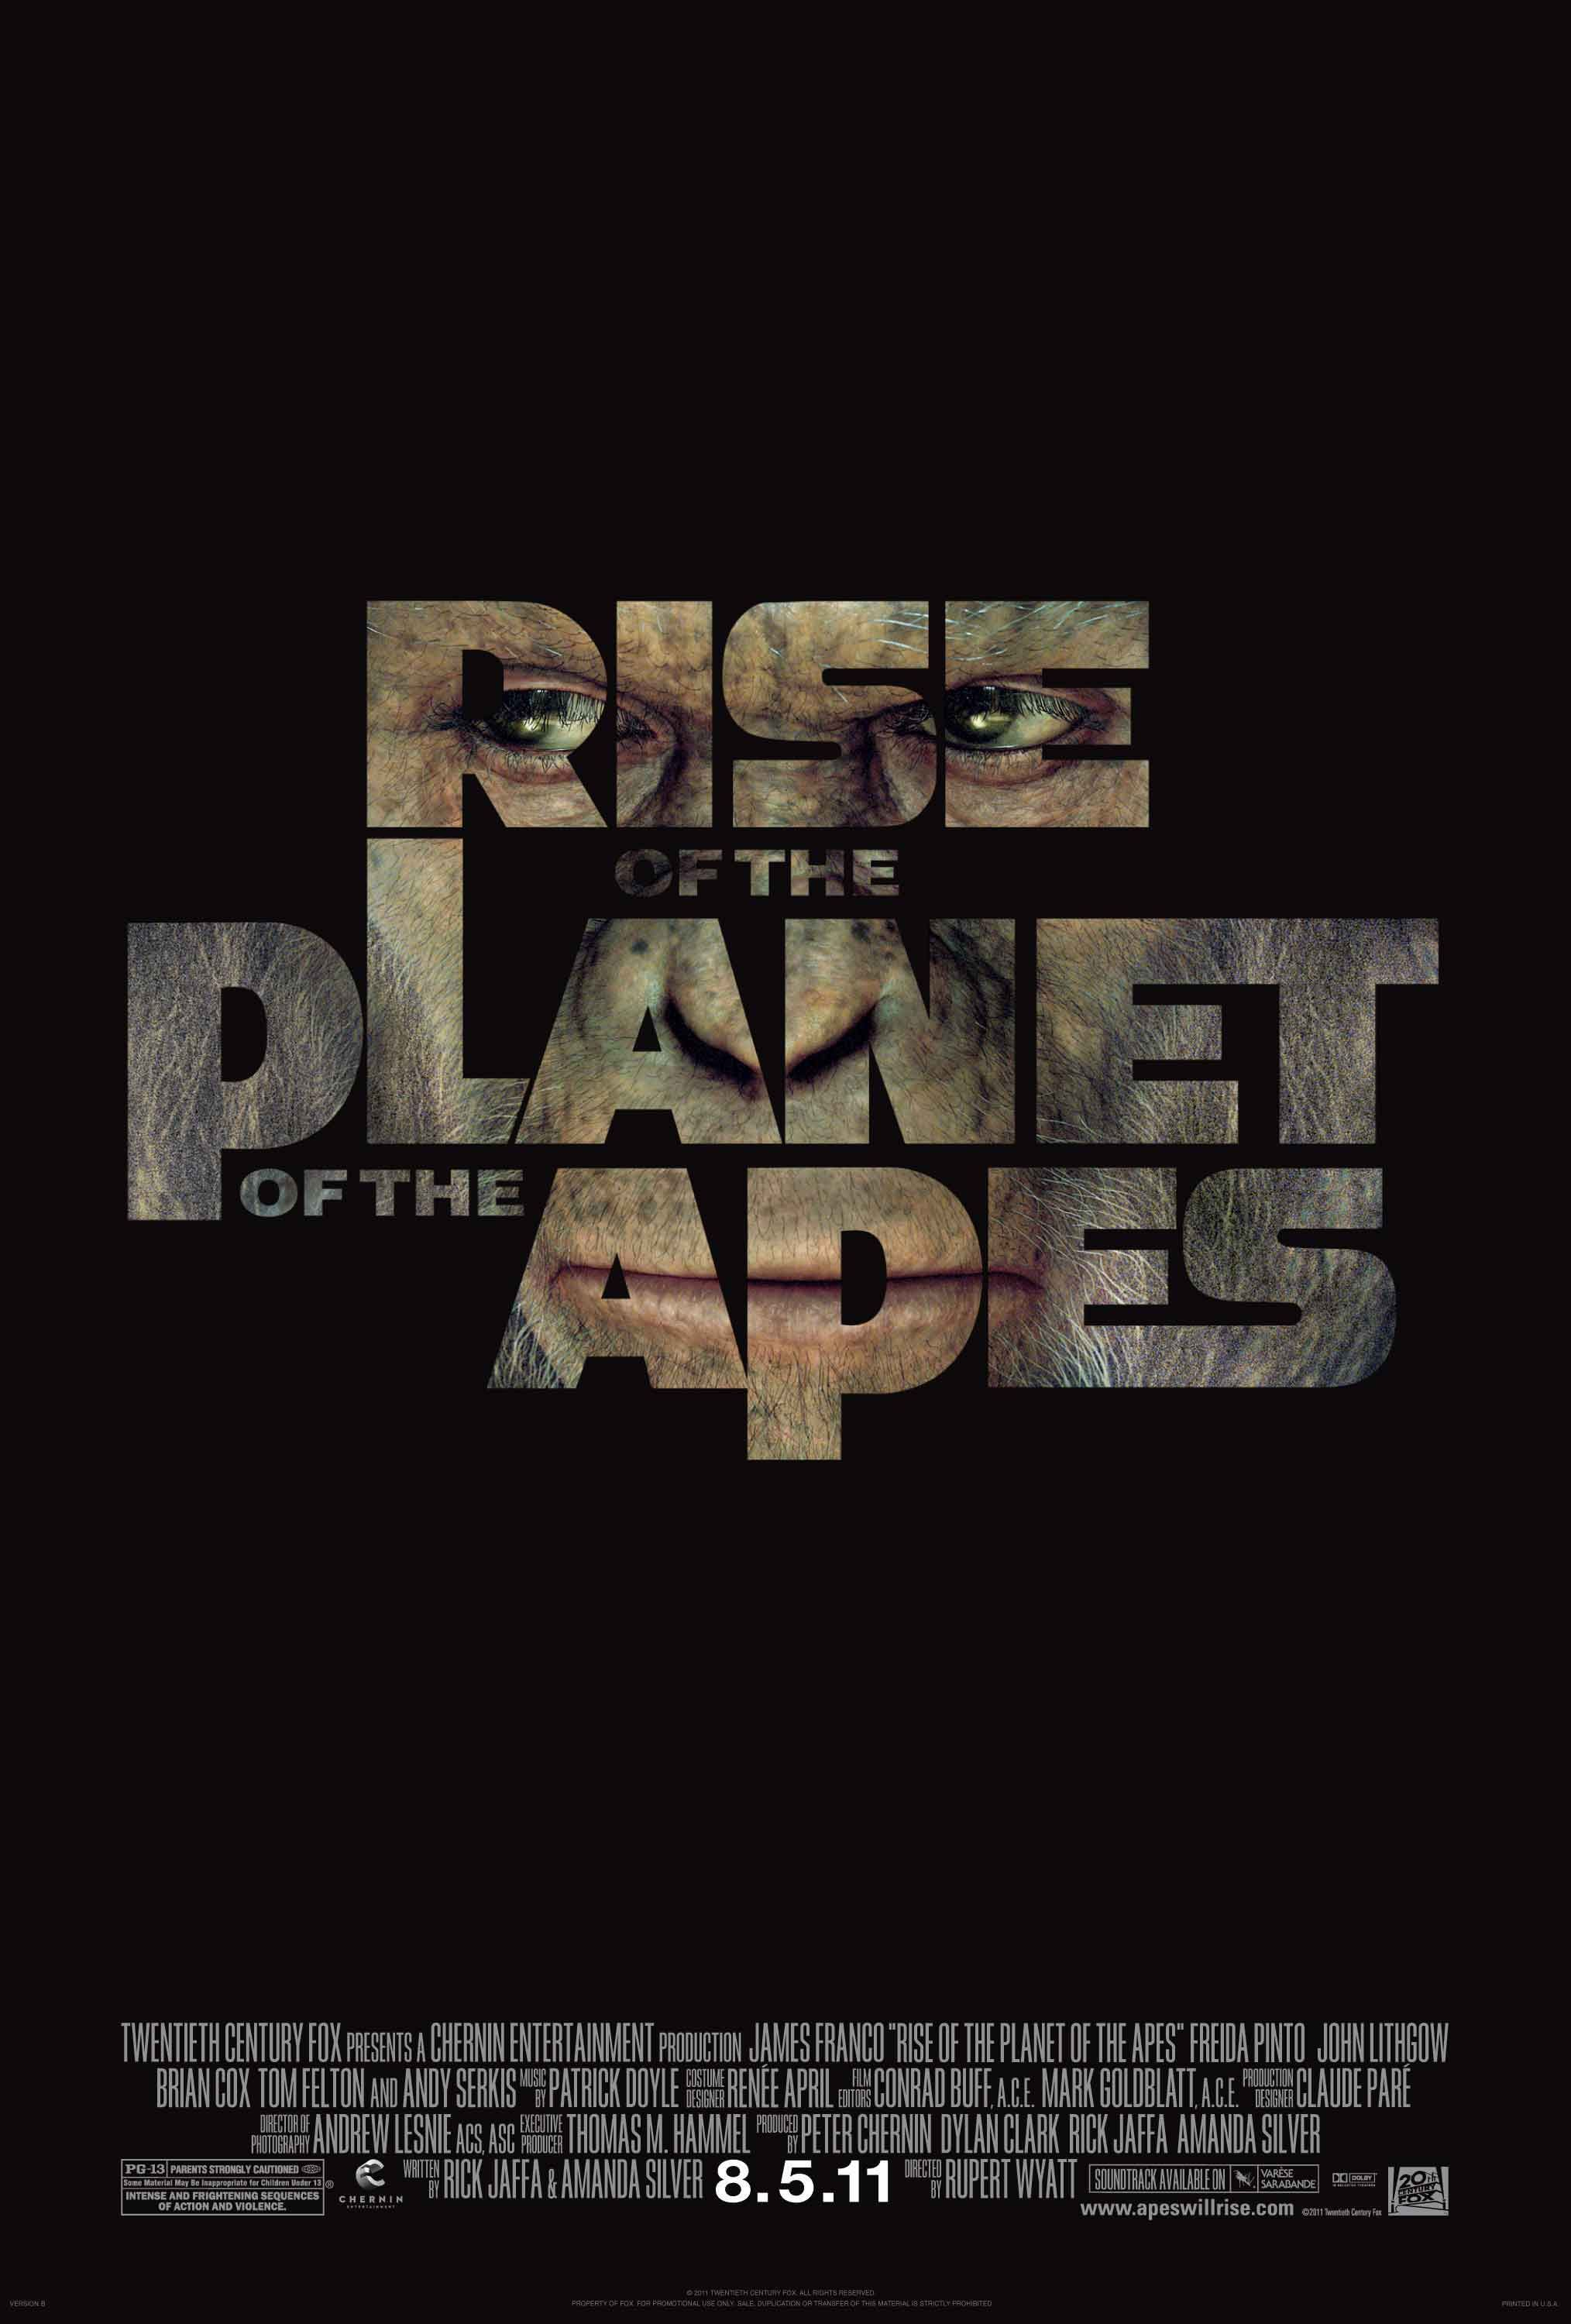 rise of the planet of apes 2011-8-30  rise of the planet of the apes is packing them in at box offices everywhere, bringing with it a unique animal rights message activist loredana loy provides insight into the film, including her thoughts on the power that the animal liberation theme carries, as well as a critique of where it falls short.